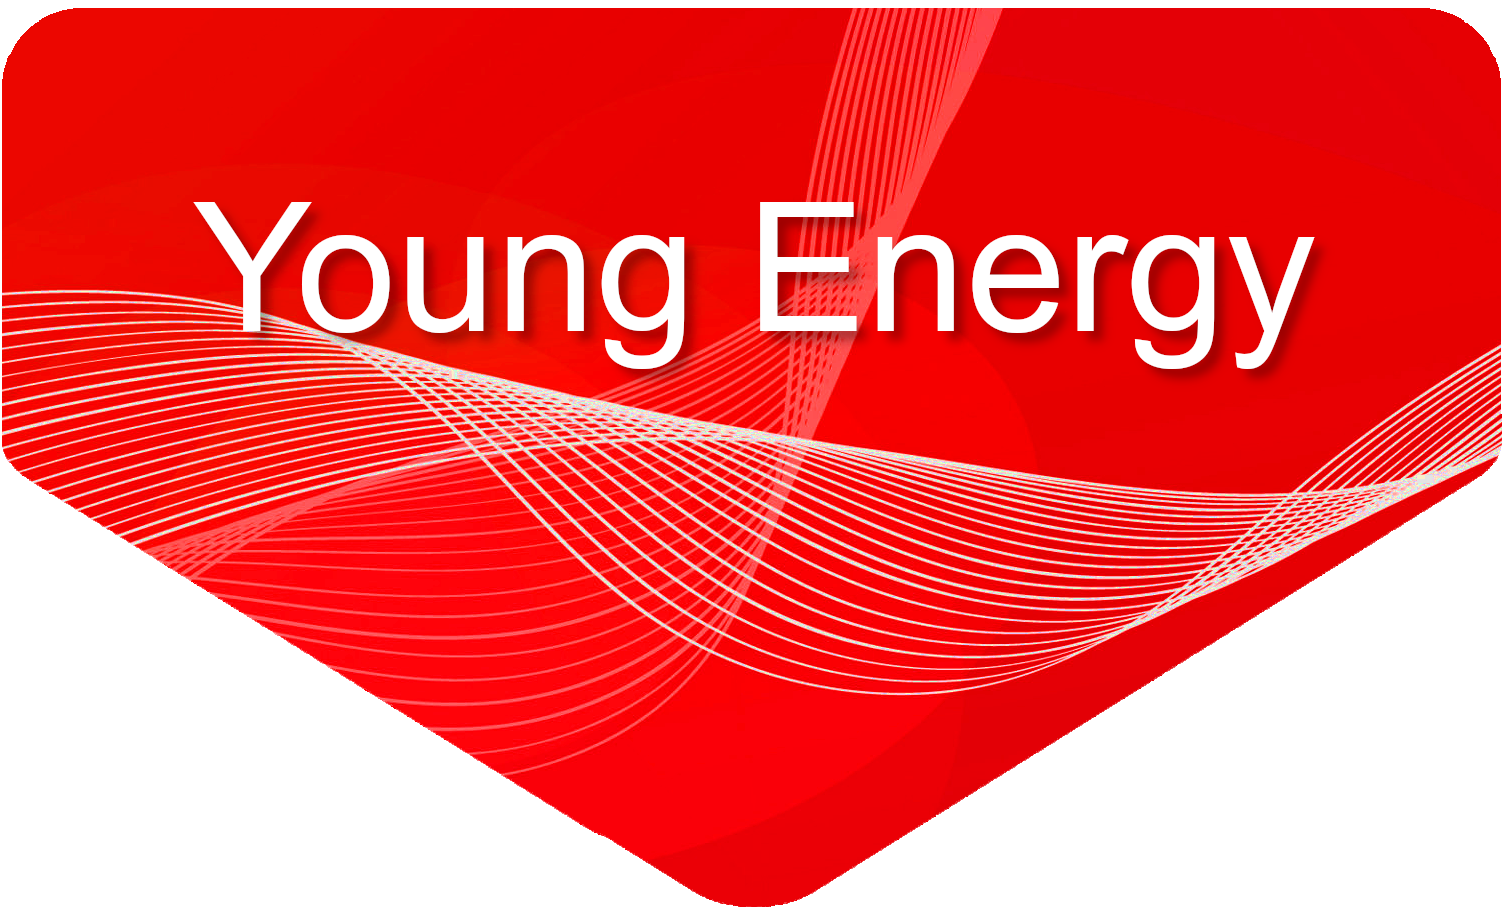 Young Energy Dreieck